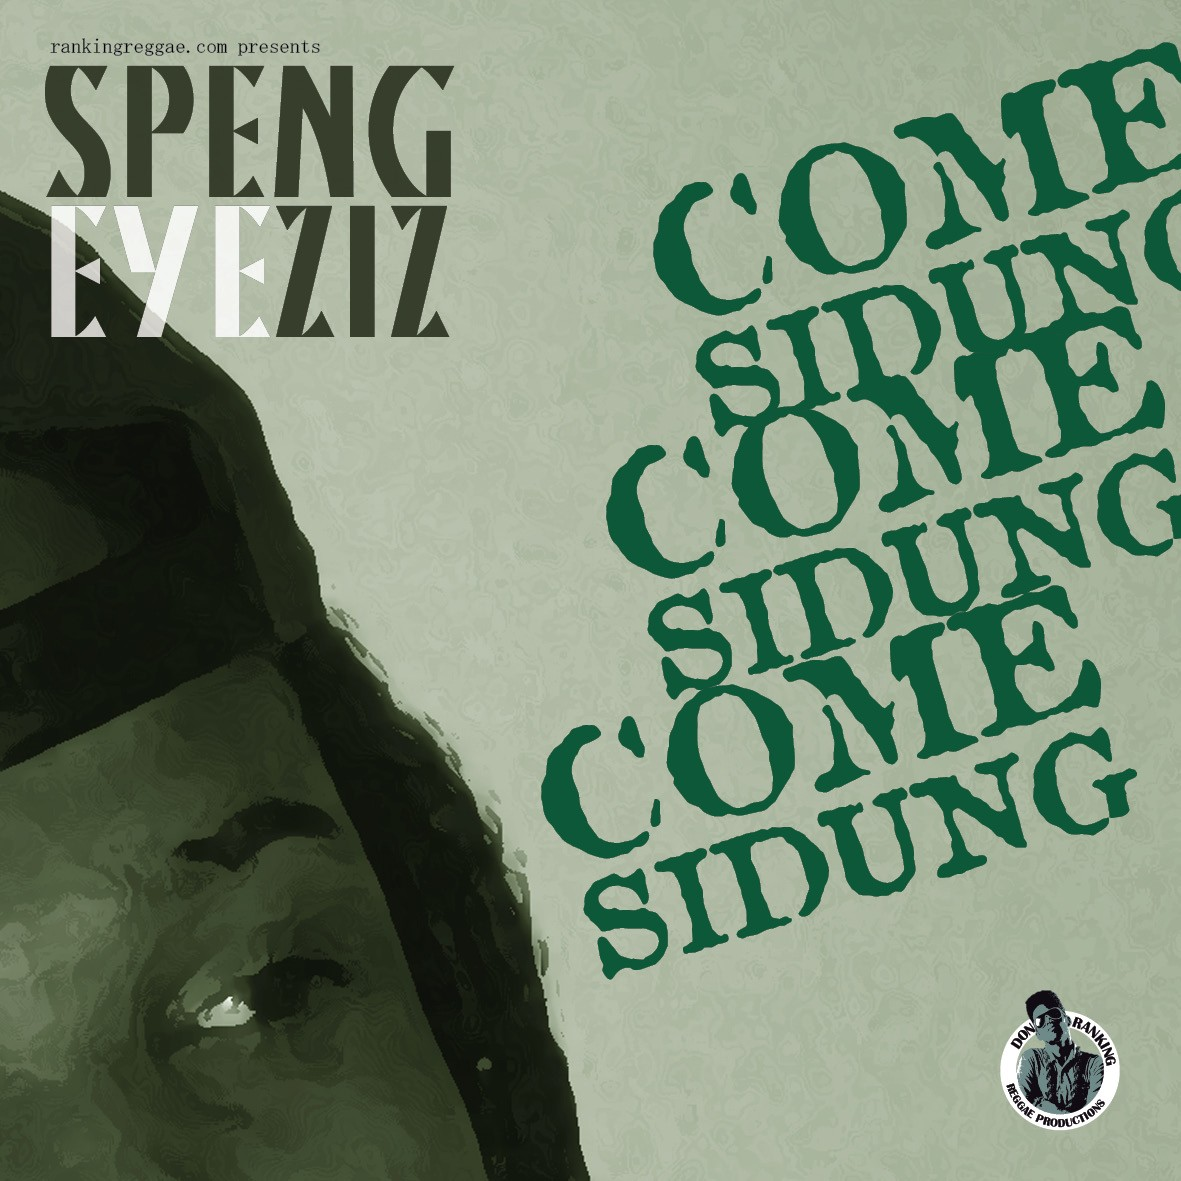 Speng Eyeziz - Come Siddung